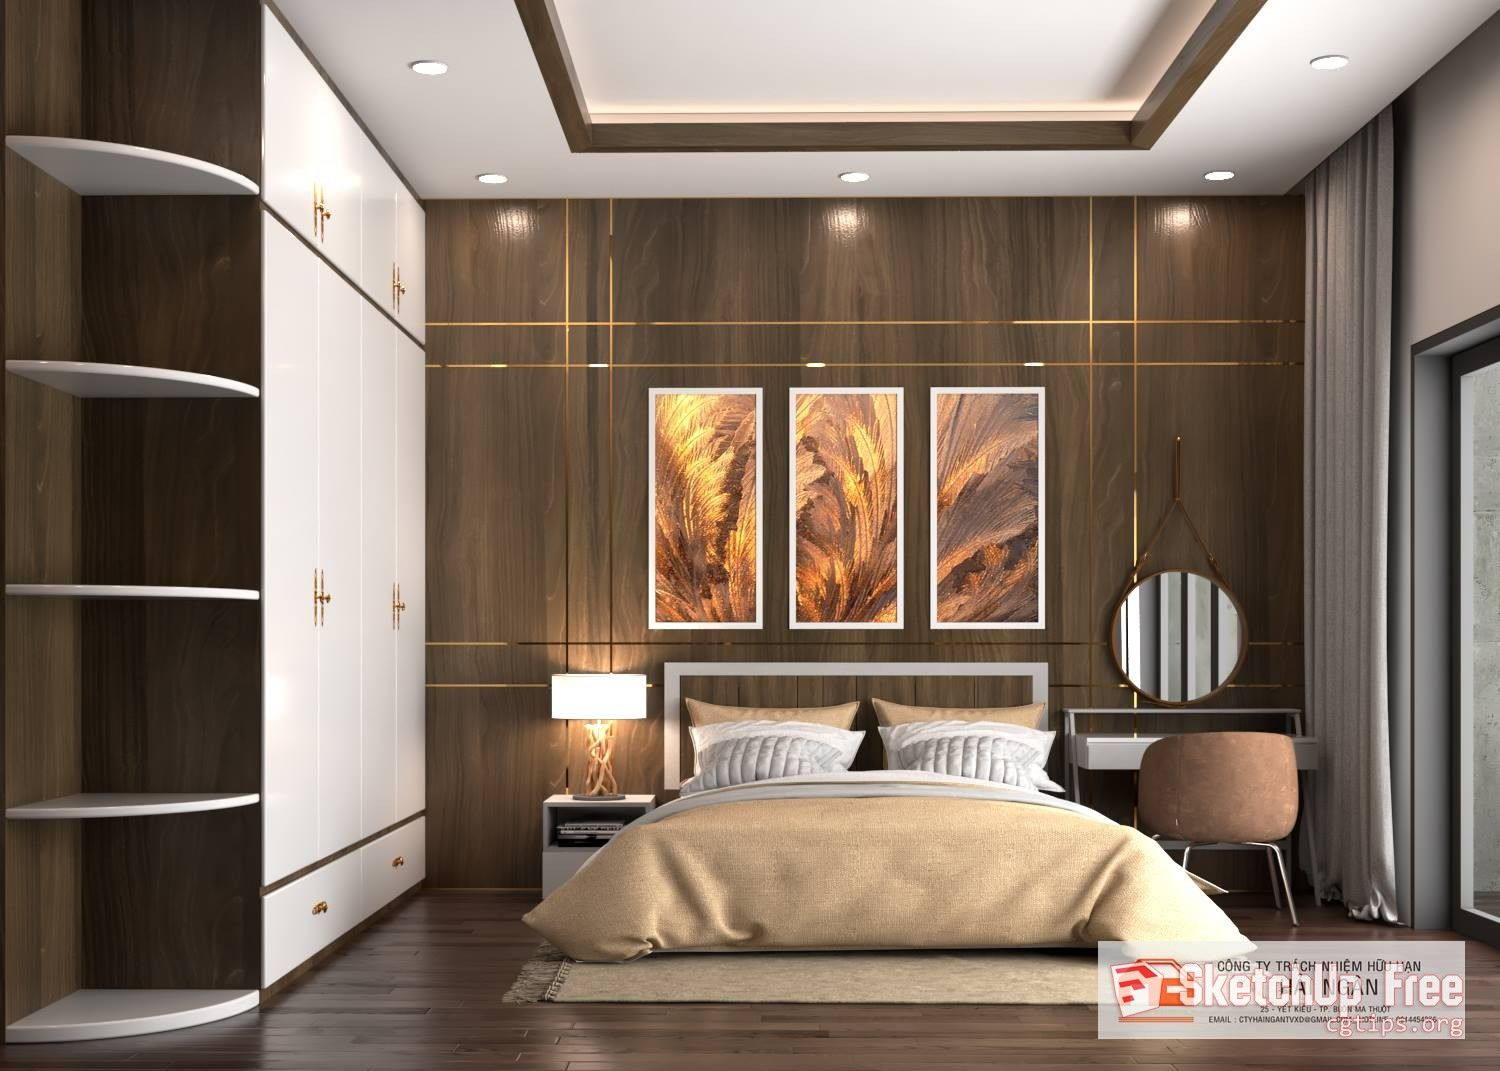 1721 Interior Bedroom Sketchup Model Free Download Bedroom Interior Interior Design Bedroom Modern Bedroom Design